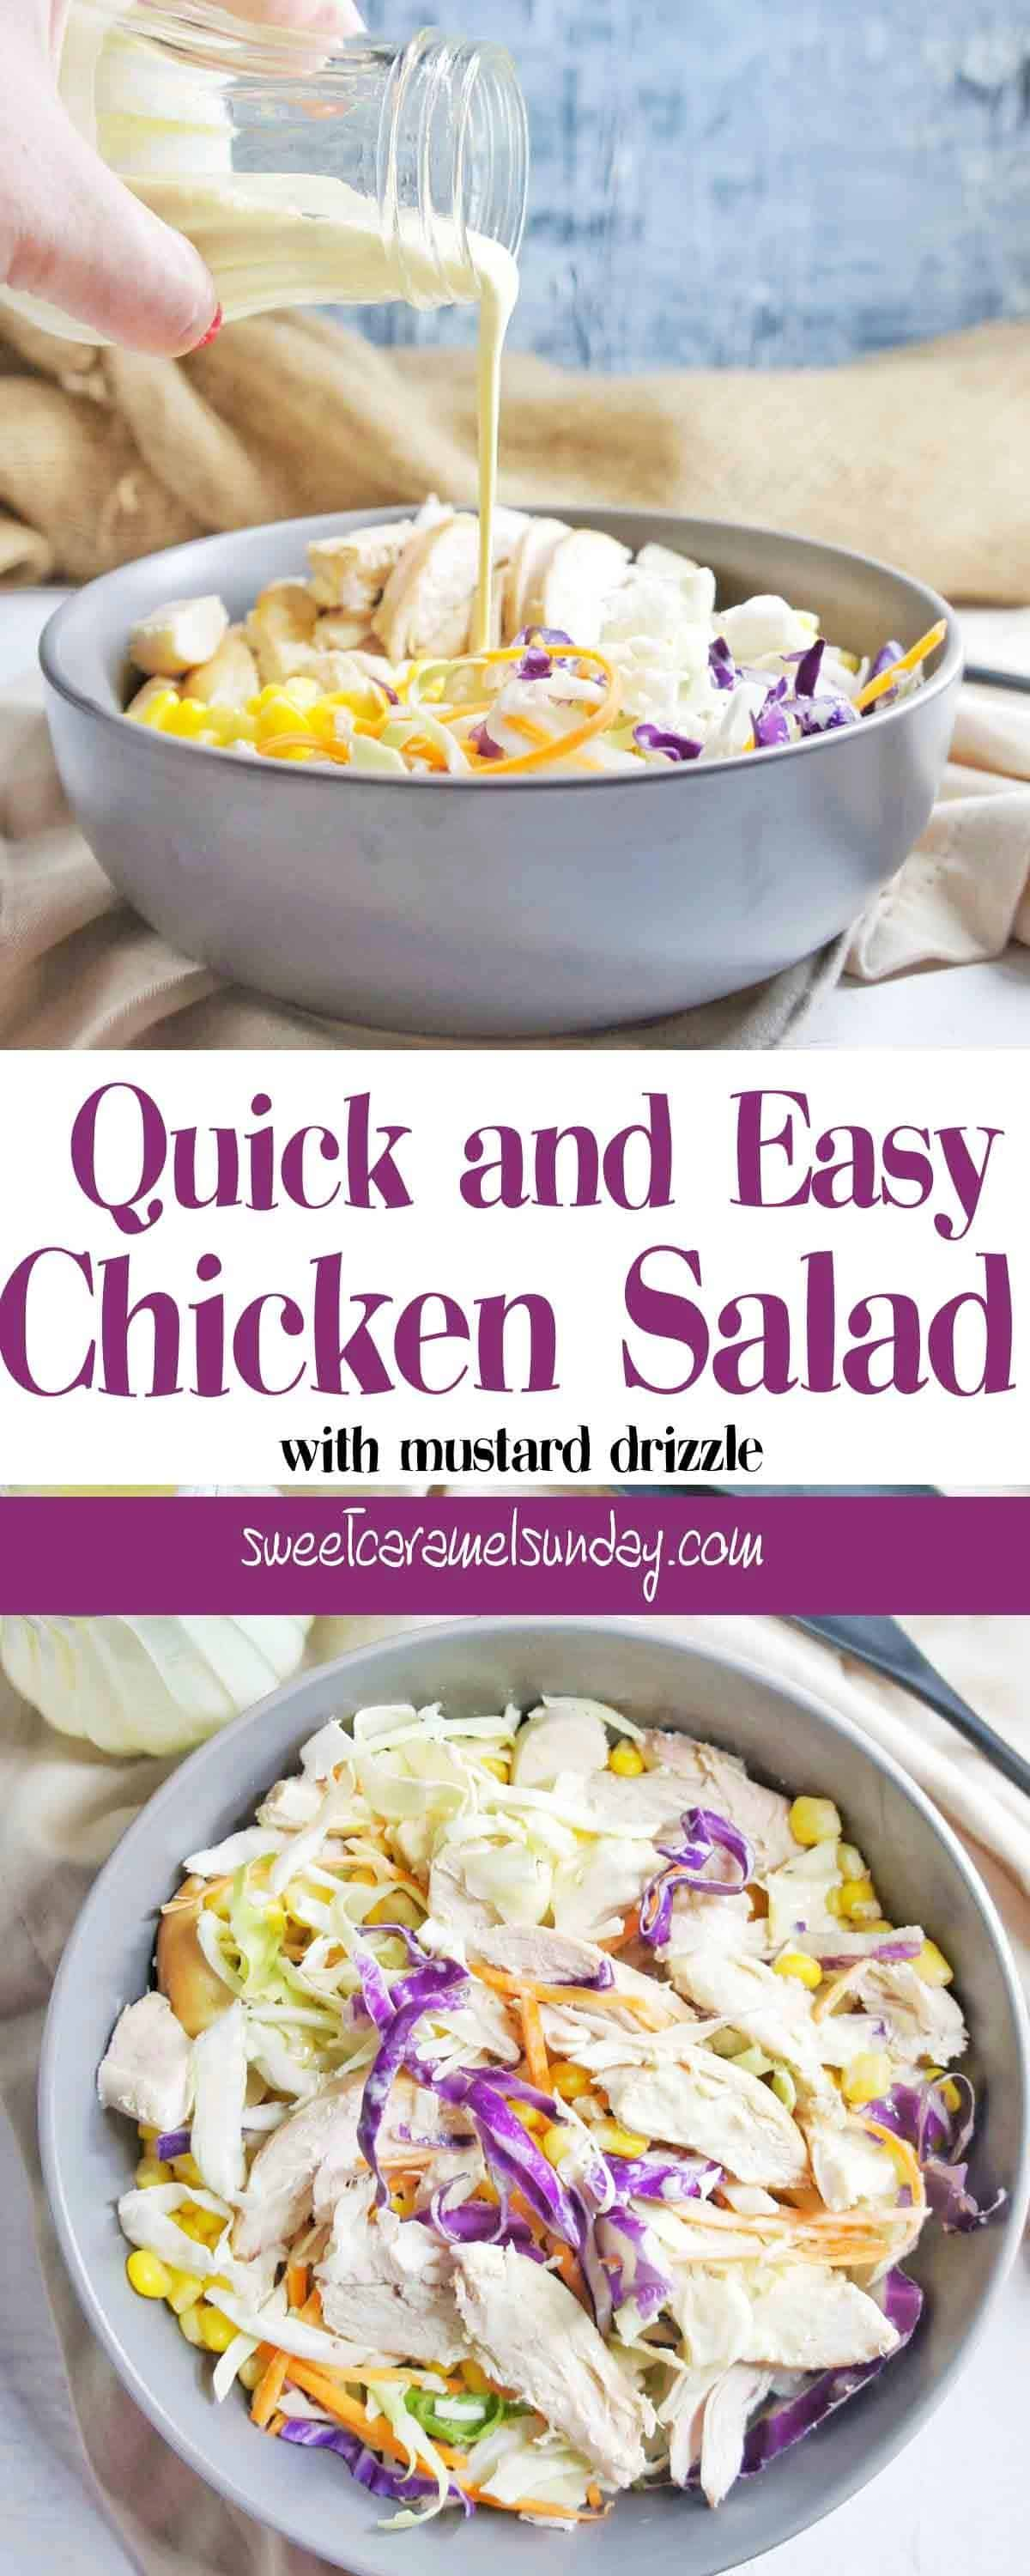 Chicken Salad in a grey bowl with dressing being poured over it